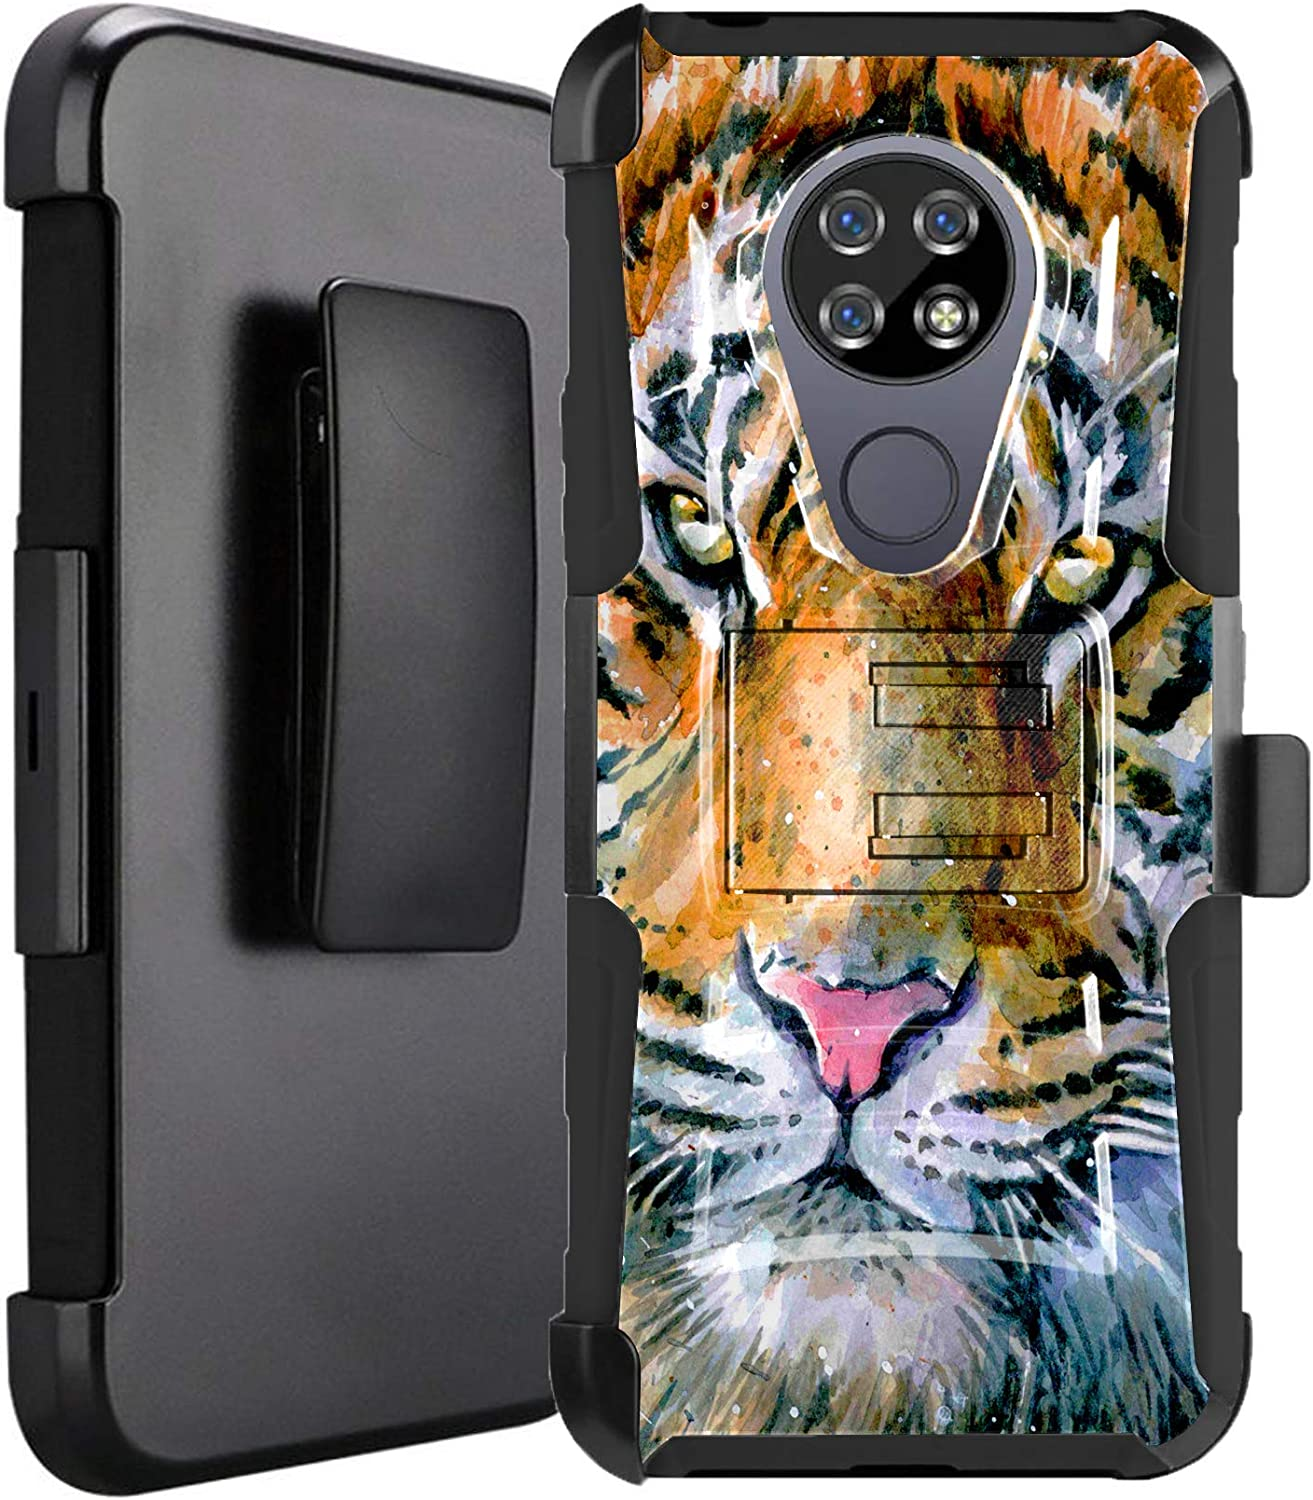 DALUX Hybrid Kickstand Holster Phone Case Compatible with Cricket Ovation/AT&T Radiant Max 4G LTE (2020) - Dominant Tiger